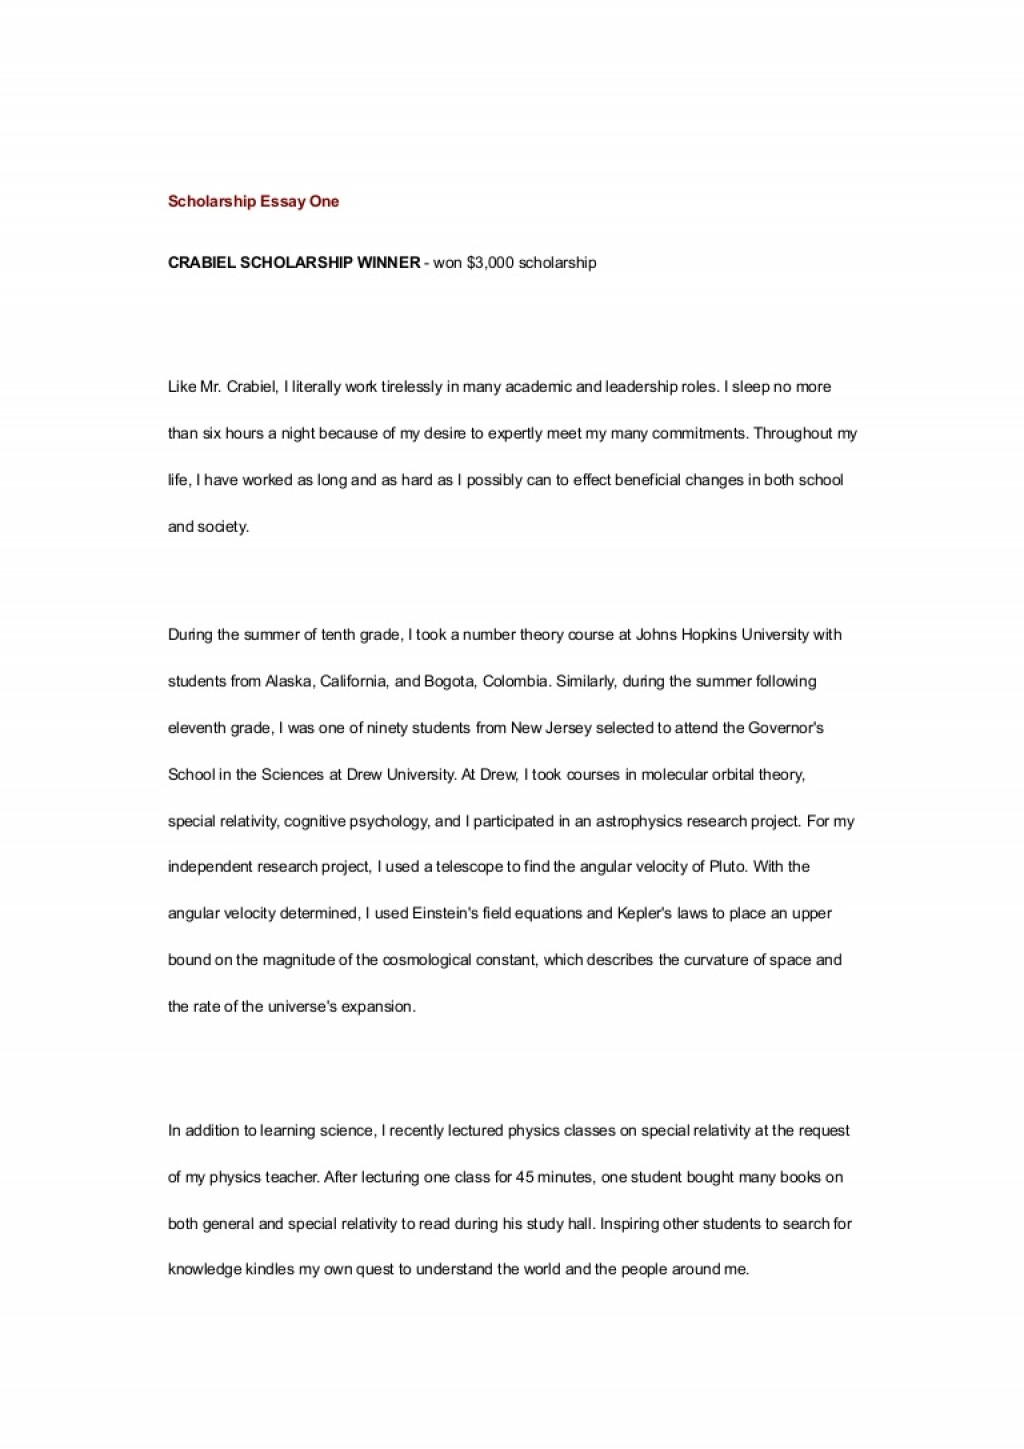 006 Winning Scholarship Essays Scholarshipessayone Phpapp01 Thumbnail Essay Exceptional Examples Pdf Gilman How To Write Large